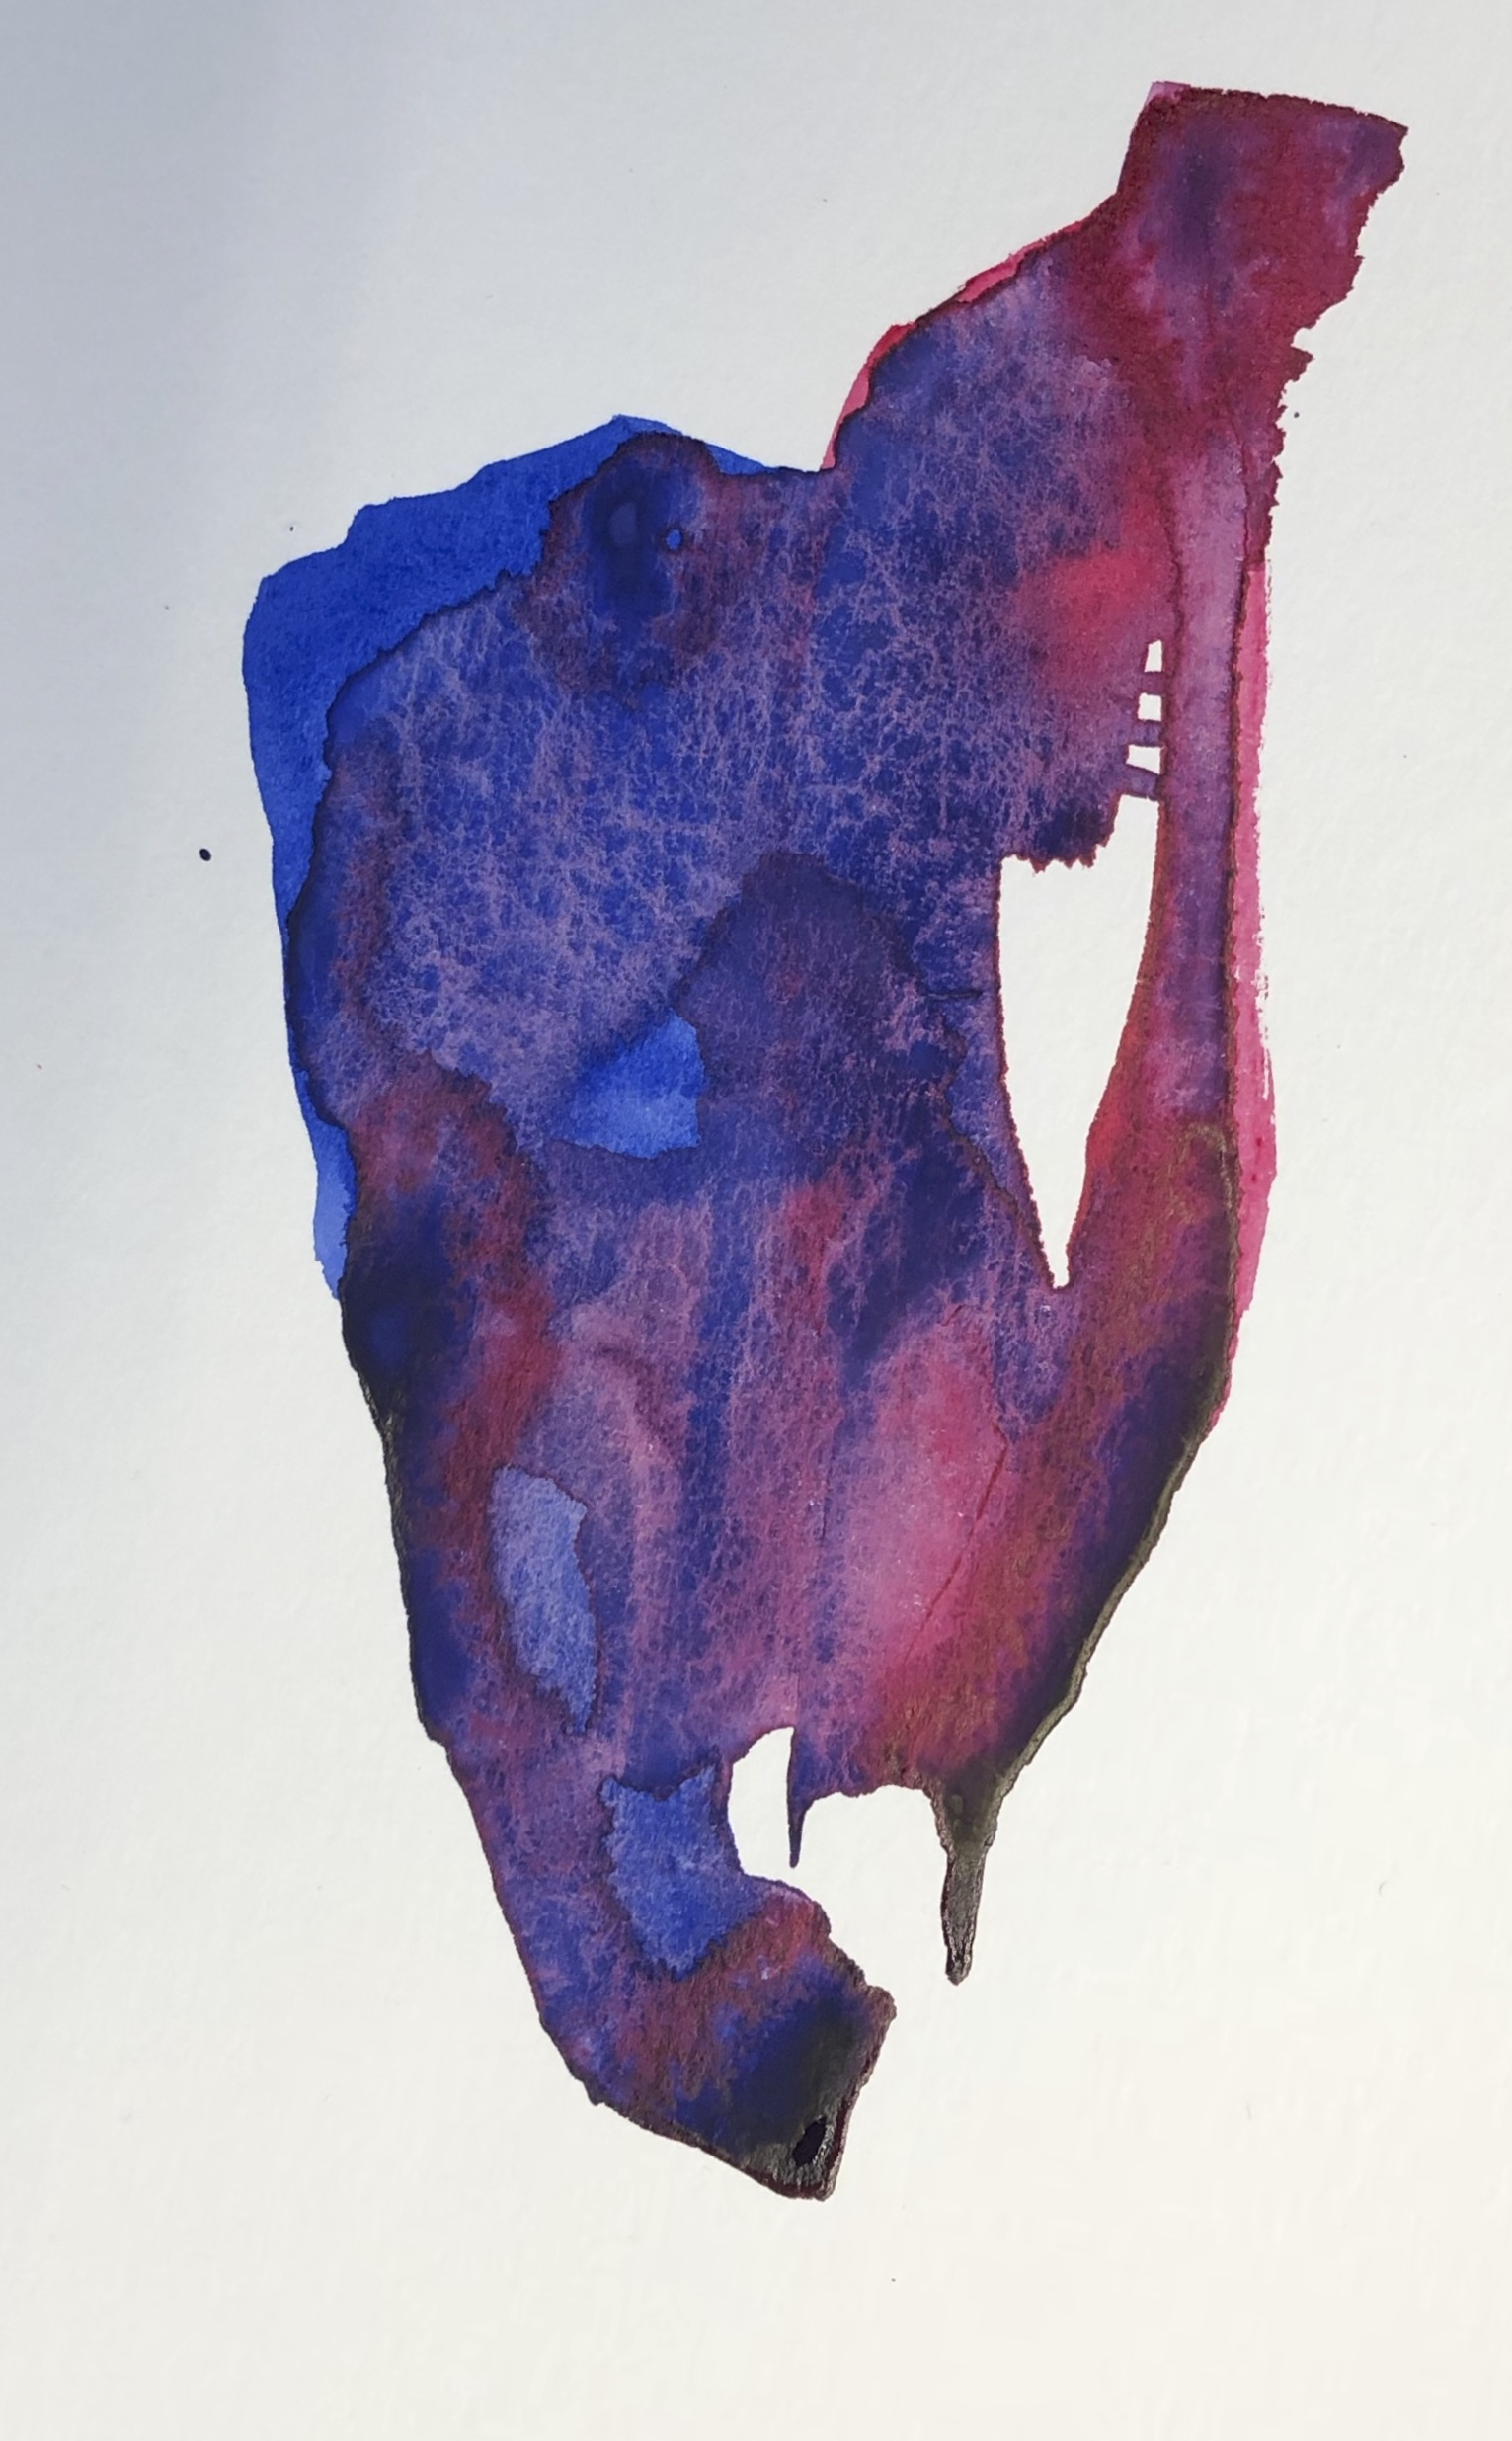 0060_AR_WaterColor_20x30cm.jpg